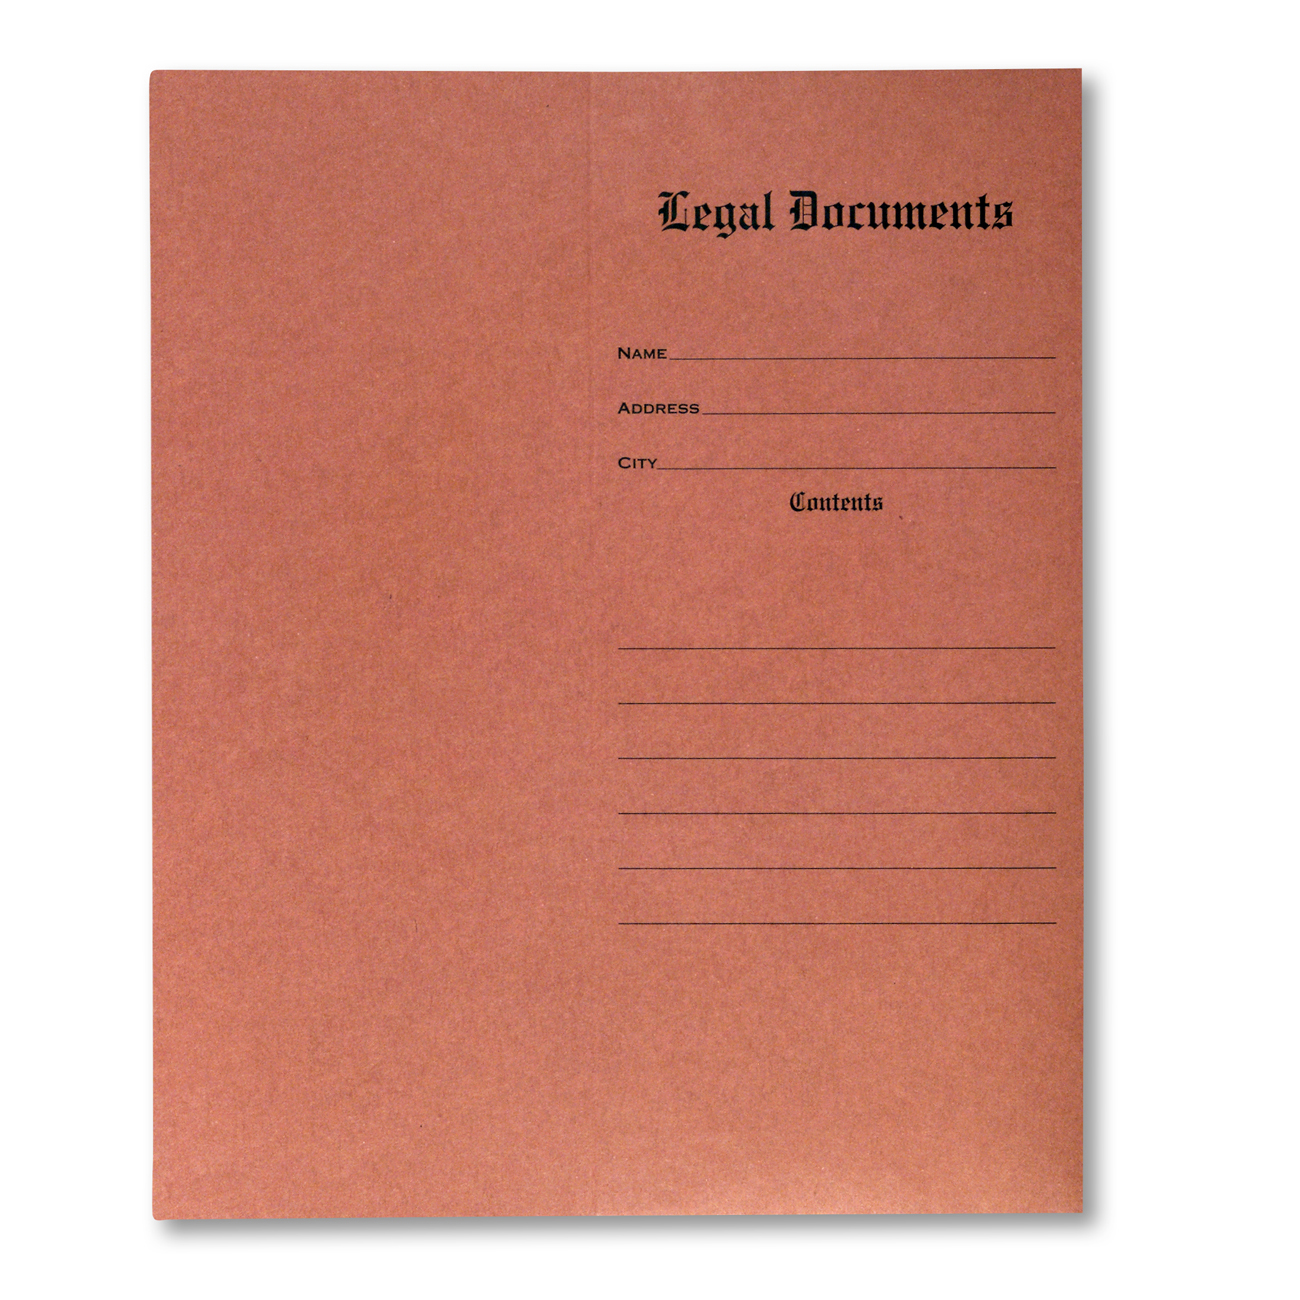 "Legal Document Envelope 4 1/2"" x 10 3/8"" Legal Document Red Fiber Envelope Recycled, 10% PCW"